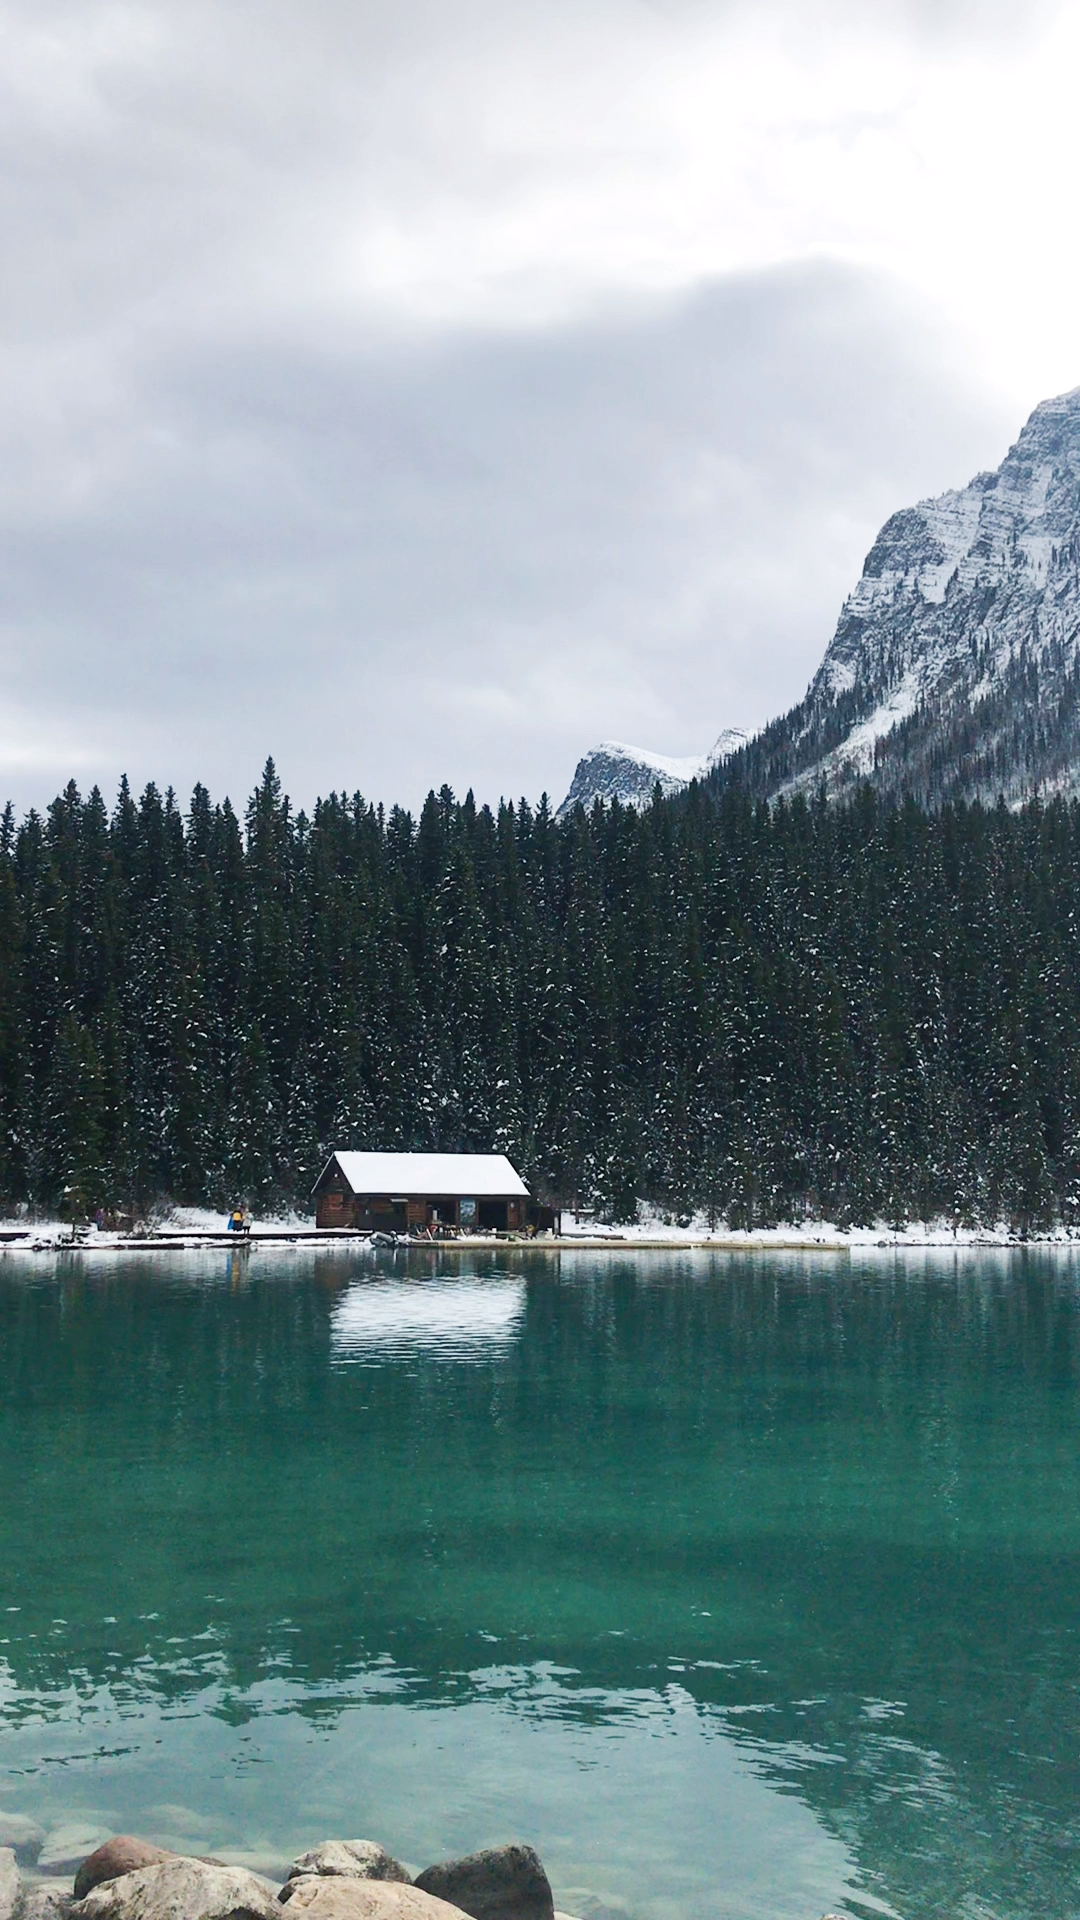 Lake Louise, Canada - Click through for the best tips for visiting here. PIN FOR LATER #canada #lakelouise #calgary #alberta